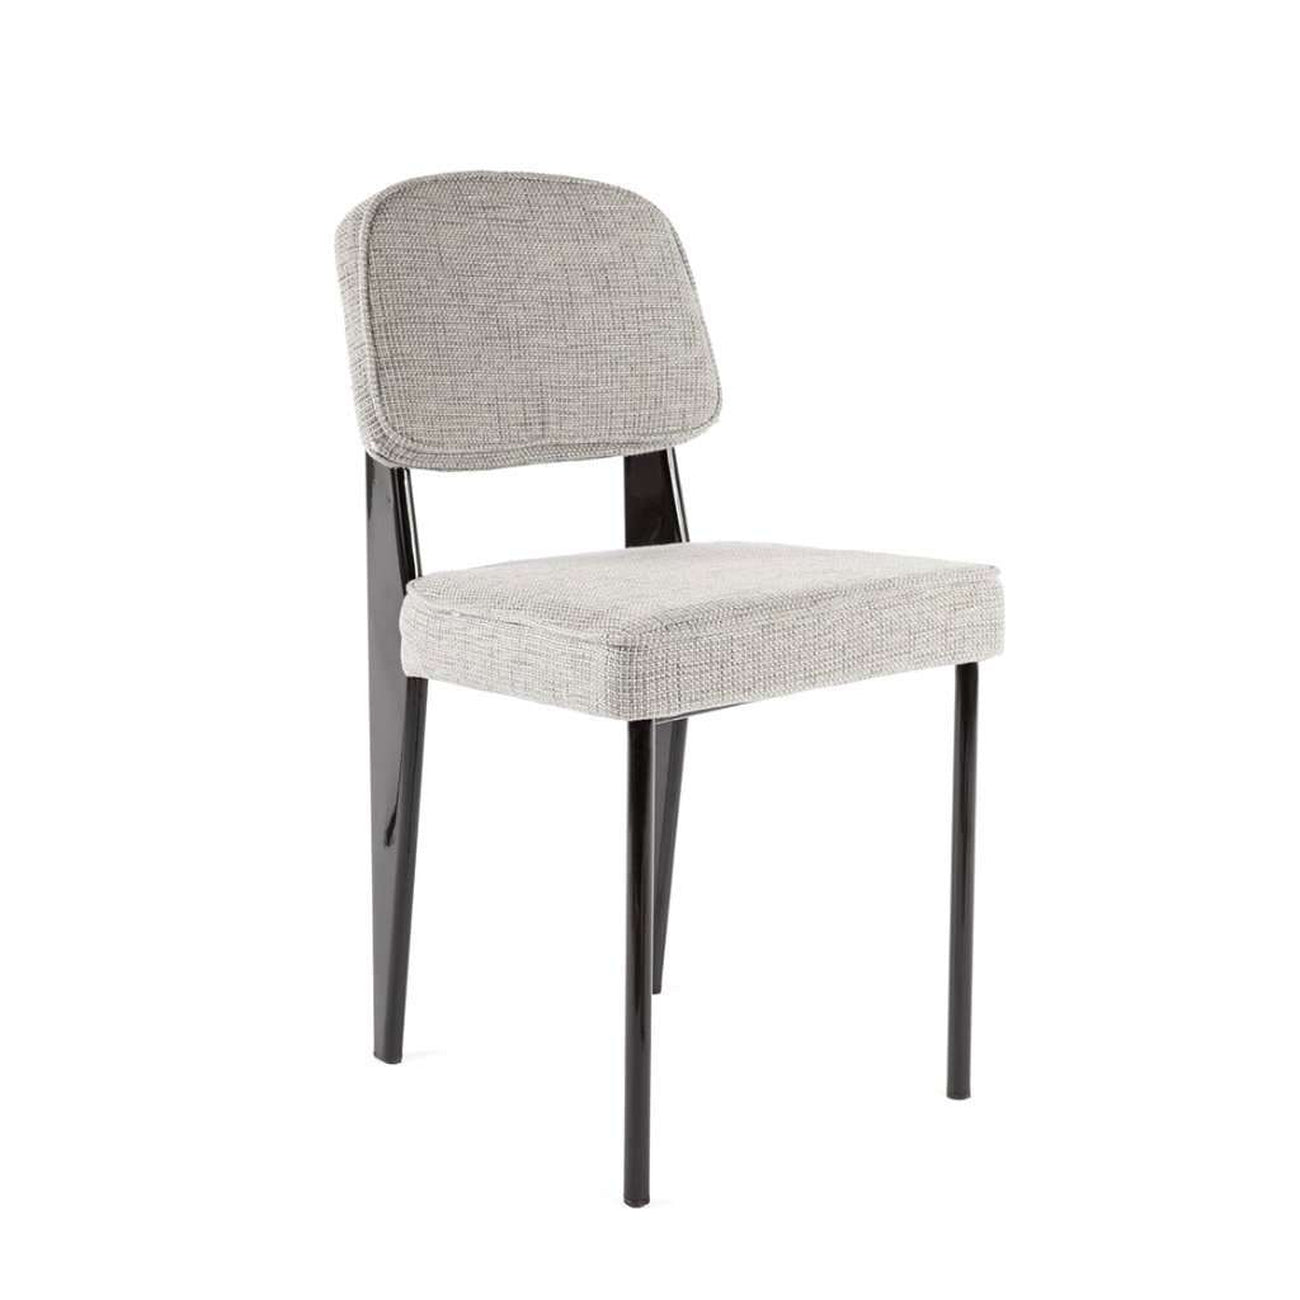 Ordinaire Standard Chair   Black With Grey Upholstered Seat